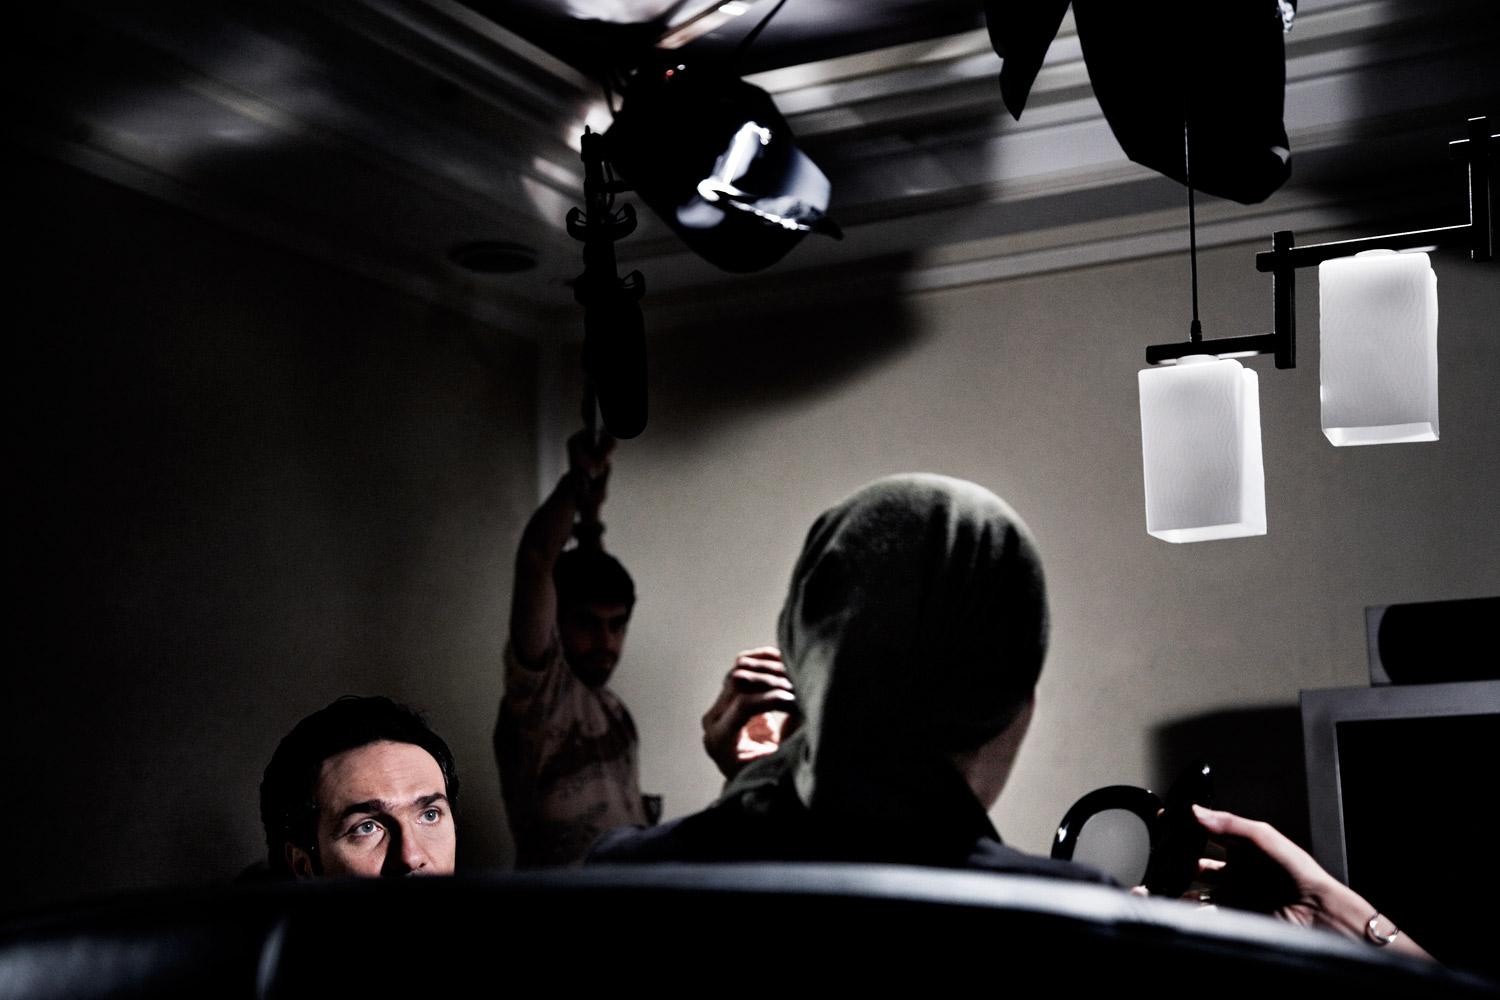 A production crew prepares for a scene on the set of director Rusagh Karimi's film The Hidden Meaning in Tehran.